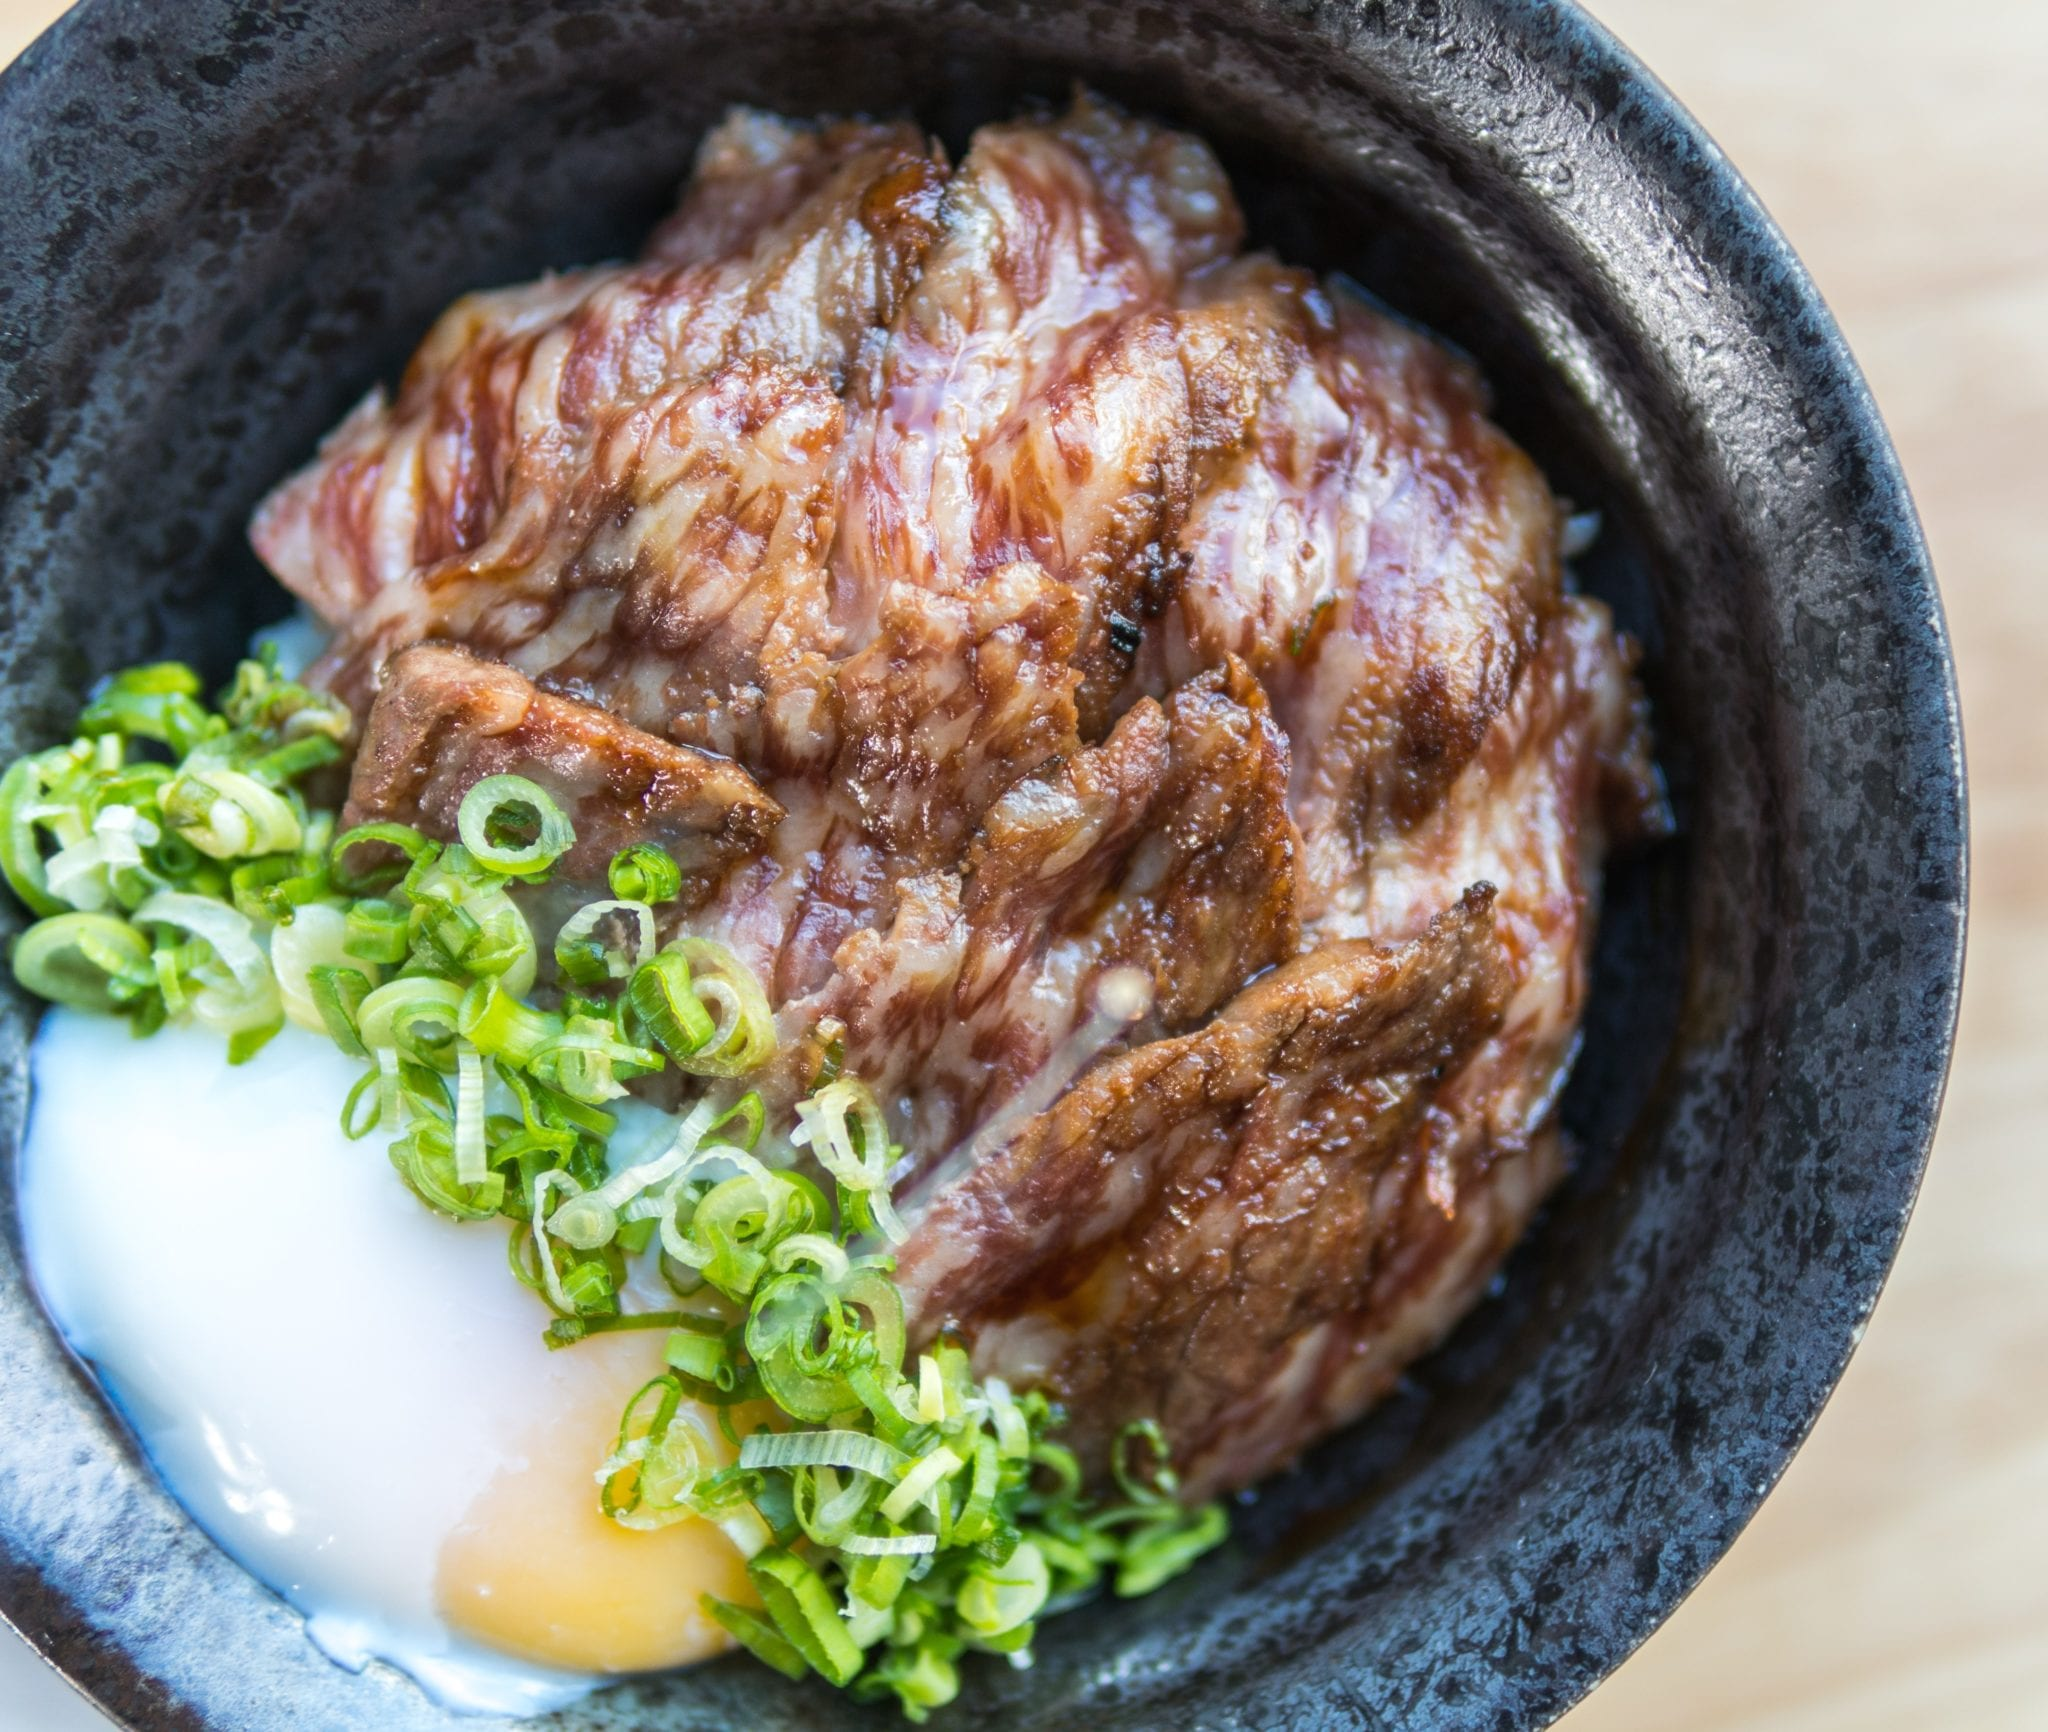 seared wagyu beef with chives and onset egg